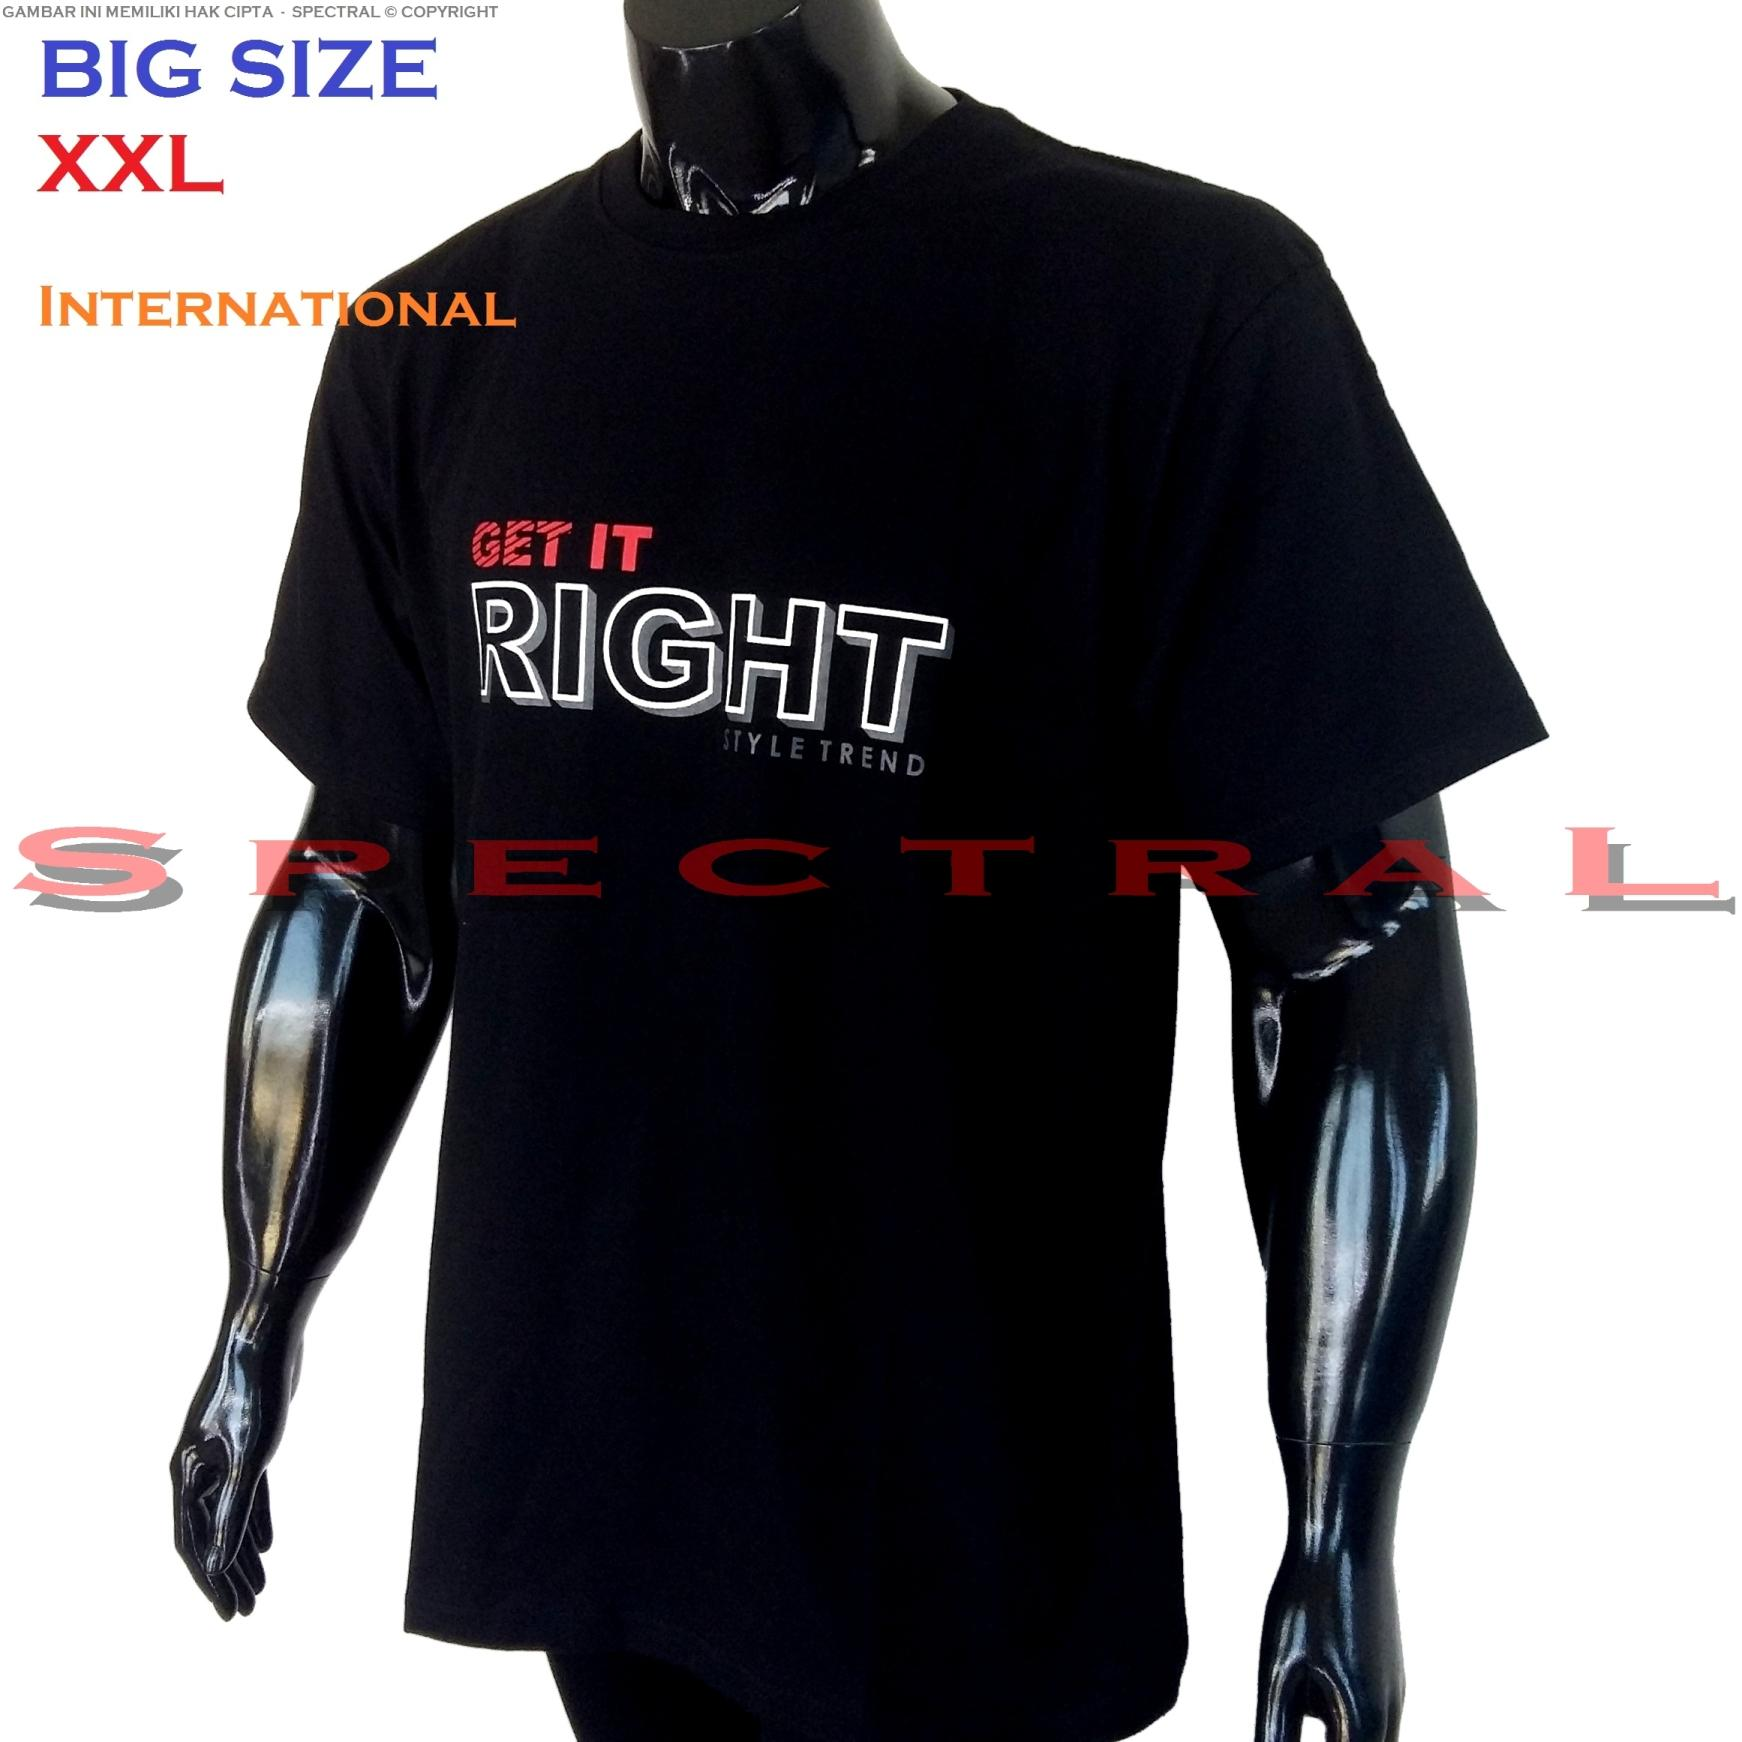 Spectral – BIG SIZE XXL INTERNATIONAL 100{55e037da9a70d2f692182bf73e9ad7c46940d20c7297ef2687c837f7bdb7b002} Soft Cotton Combed Kaos Distro Jumbo BIGSIZE T-Shirt Fashion Ukuran Besar Polos Celana Atasan Pria Wanita Katun Bapak Orang Tua Gemuk Gendut Lengan Simple Sport Casual 2L 2XL Baju Cowo Cewe Pakaian Terbaru